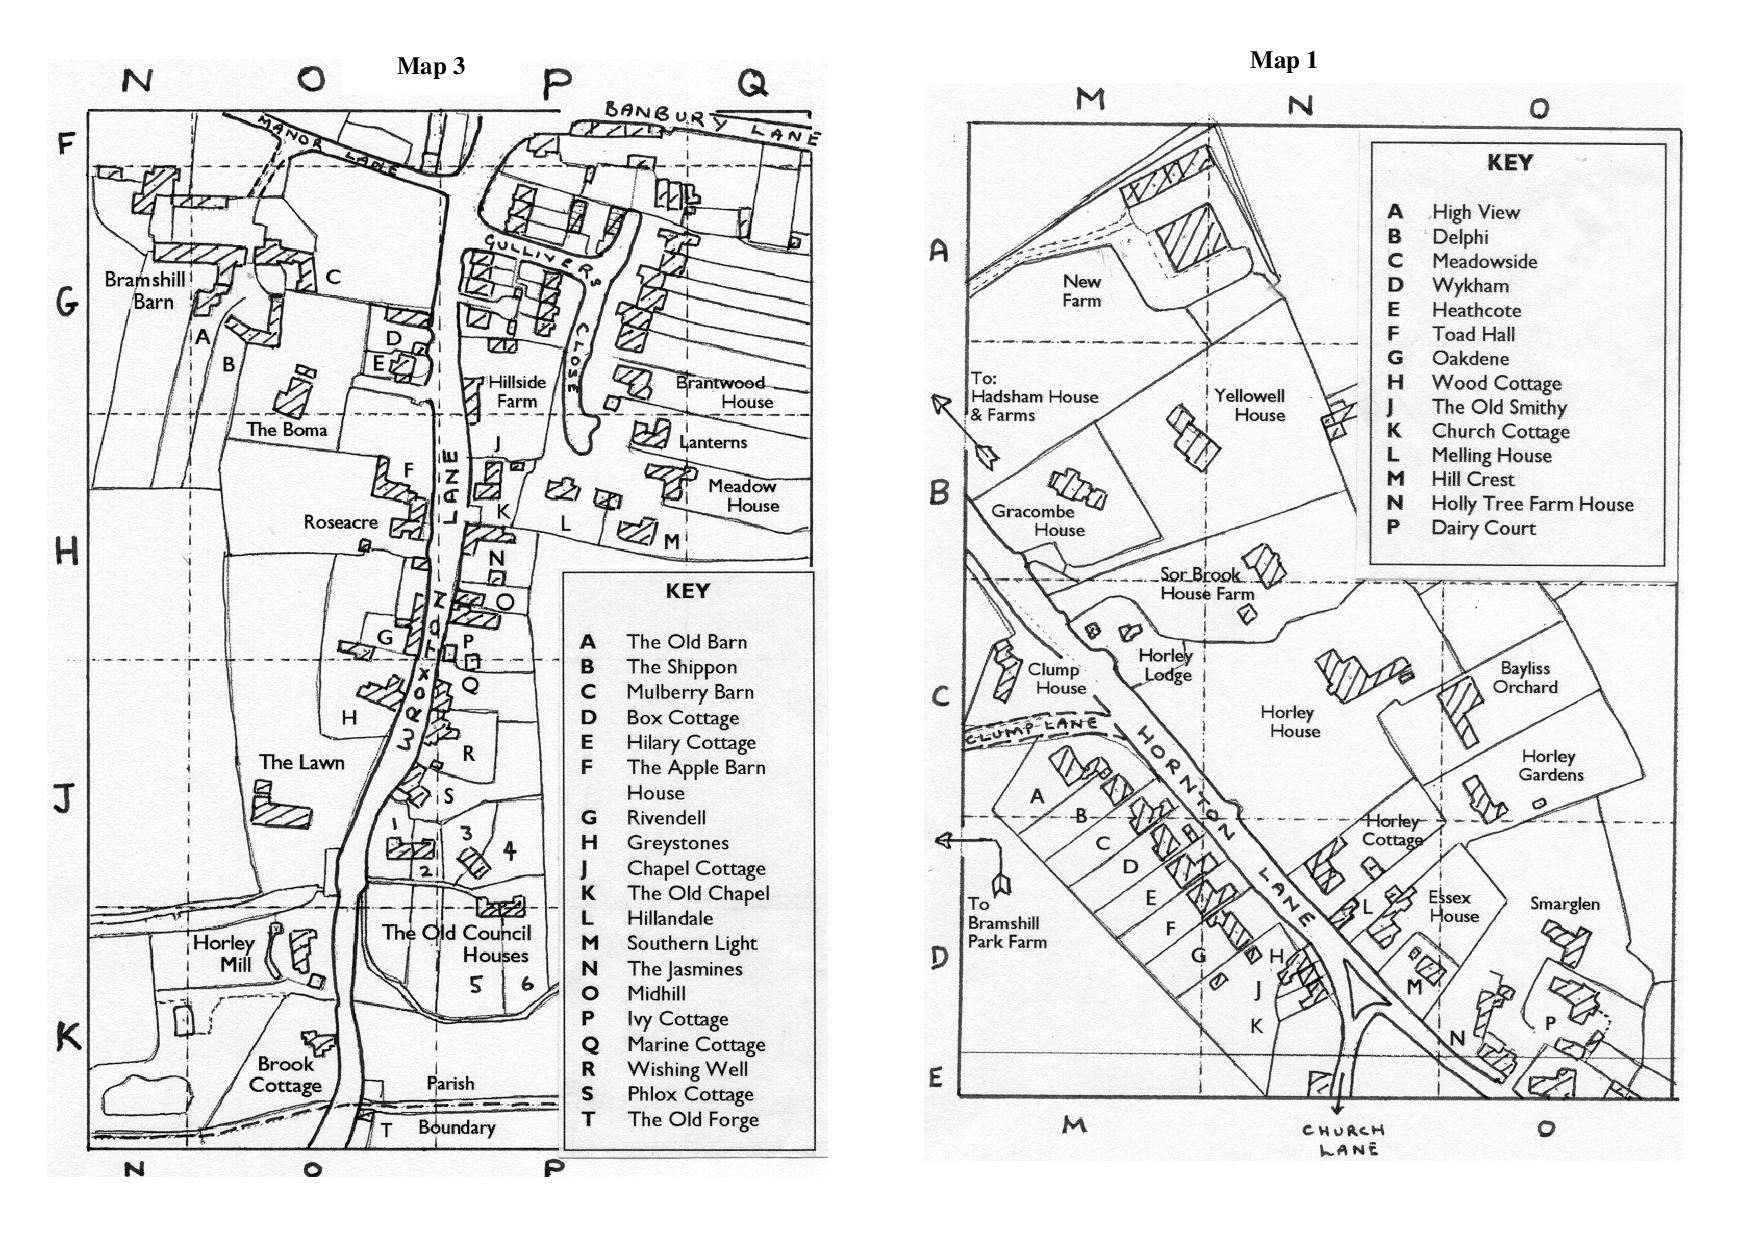 Horley map 1 and 3